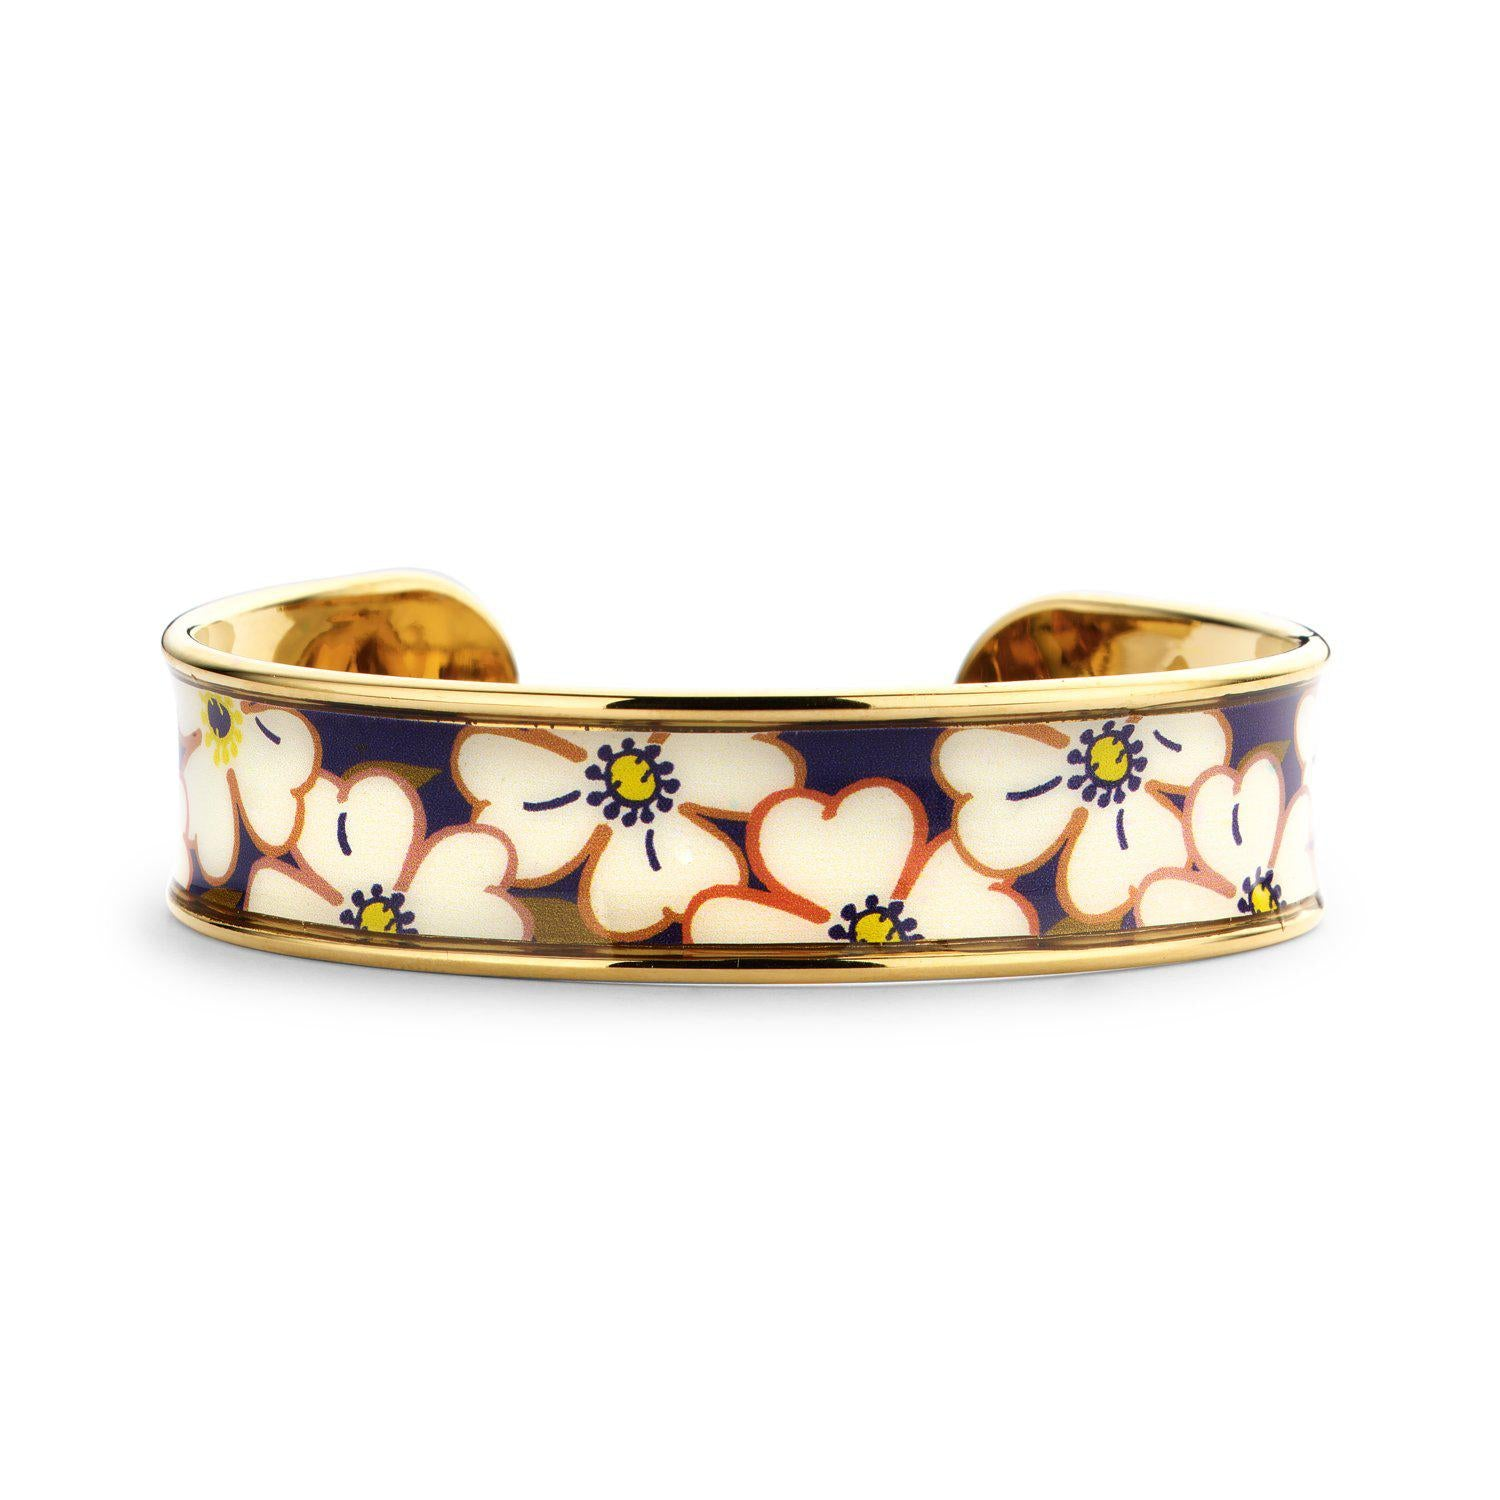 Memory Cuff bloom blue/red-Armbanden-Souvenirs de Pomme